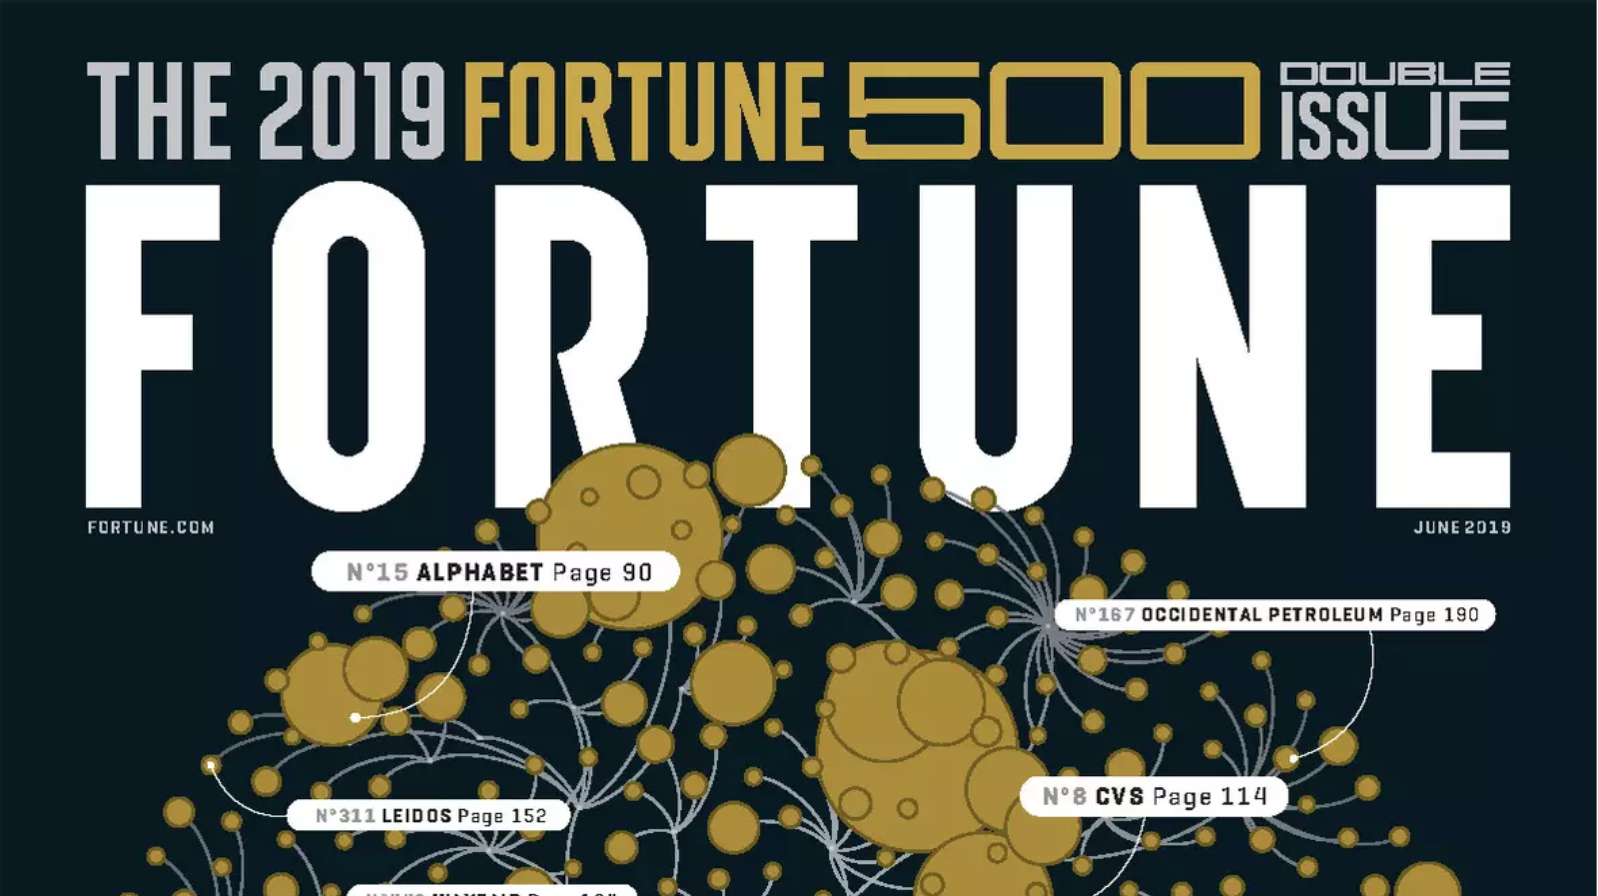 The 2019 Fortune 500 Issue